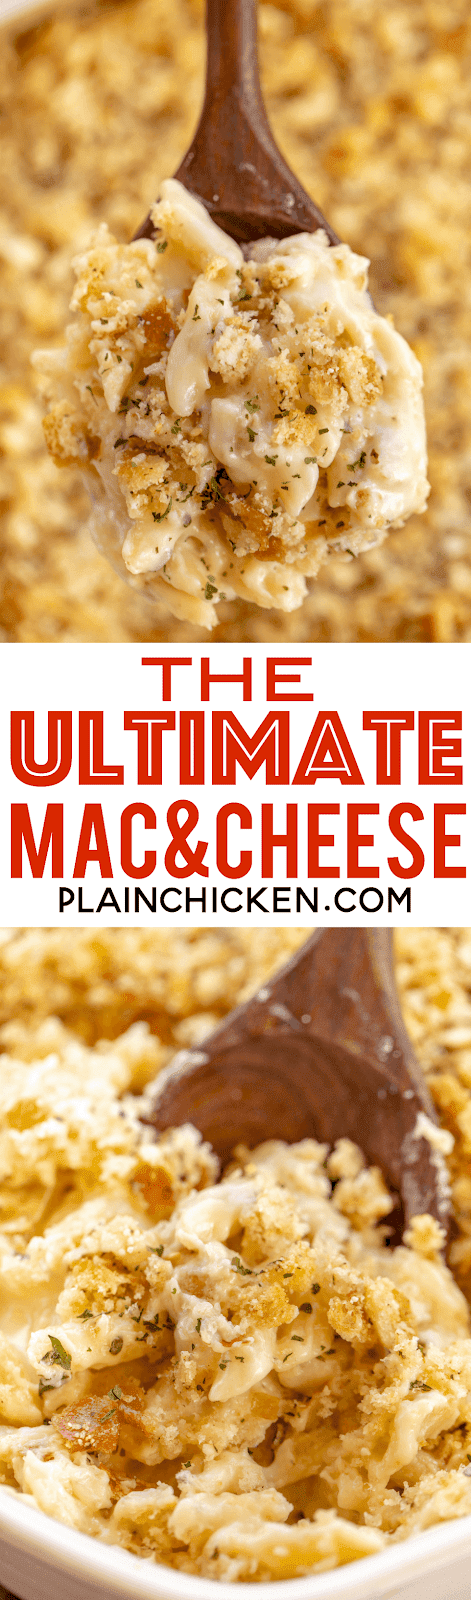 Ultimate Mac and Cheese - loaded with Havarti, White Cheddar and Parmesan and topped with yummy Garlic Parmesan Breadcrumbs. Makes a ton - great for potlucks, parties and the holidays! There are never any leftovers! Everyone RAVES about this delicious pasta casserole! #pasta #macandcheese #casserole #sidedish